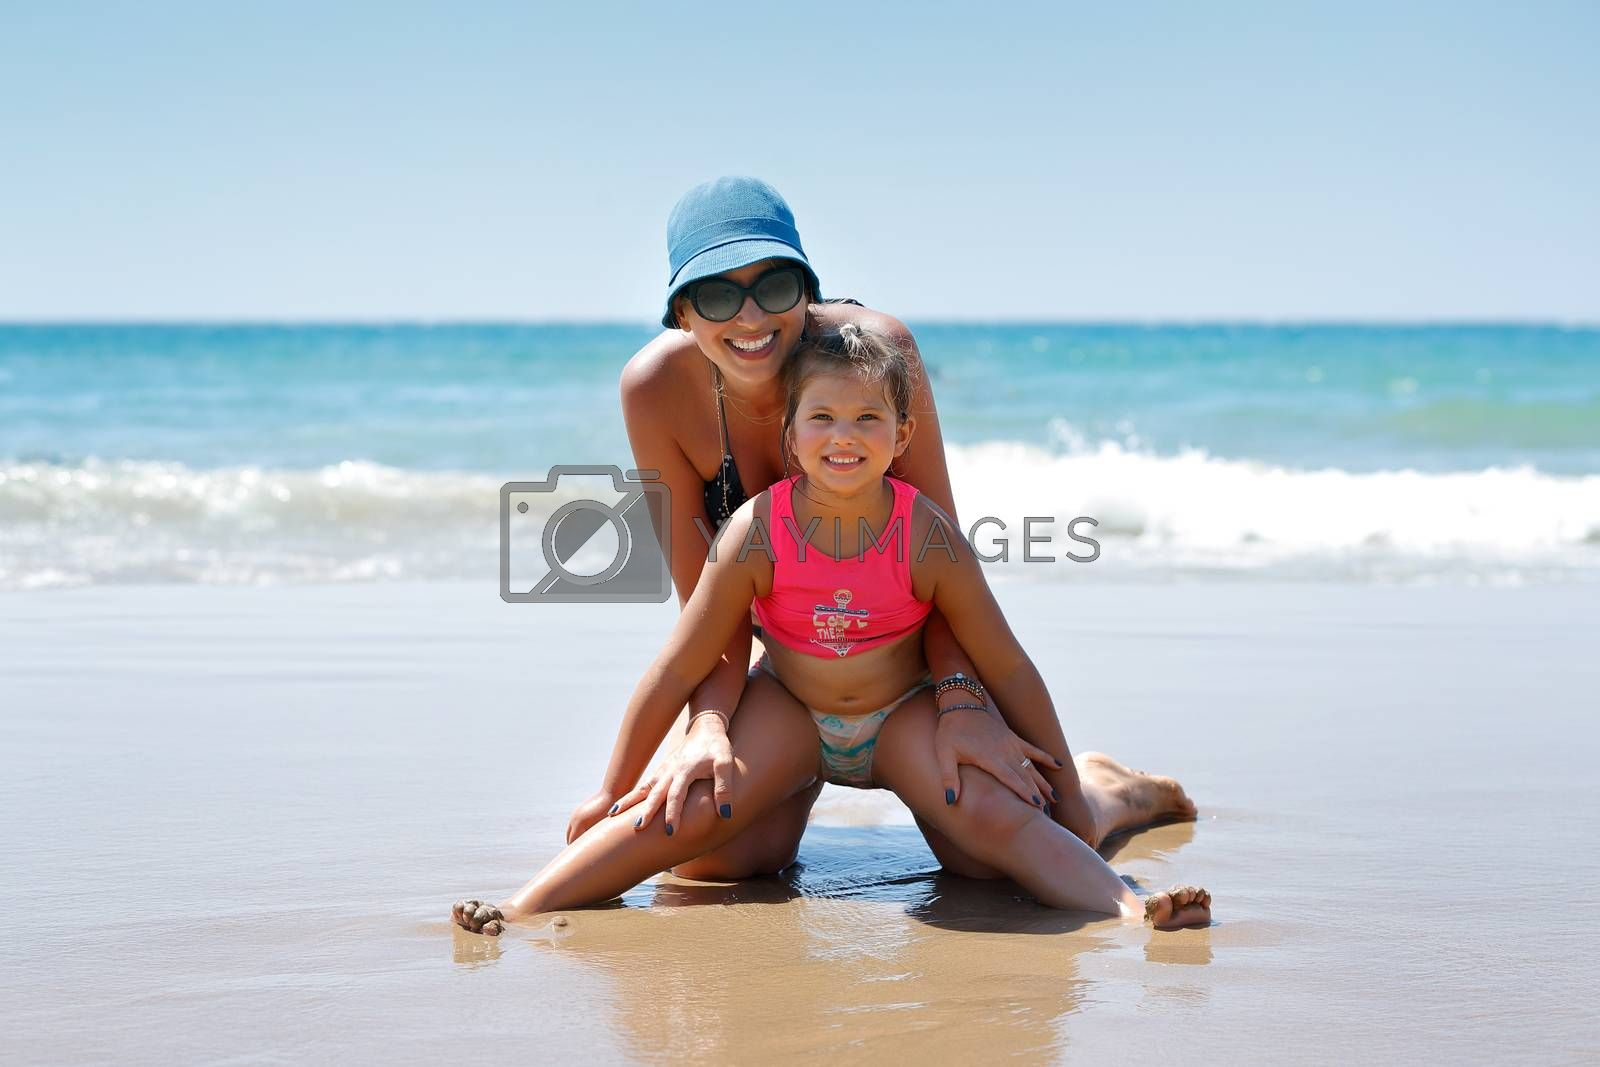 Joyful Mother and Daughter Playing on the Beach. Enjoying Summer Vacation on the Beach Resort. Leisure Time Together. Happy Family Time.